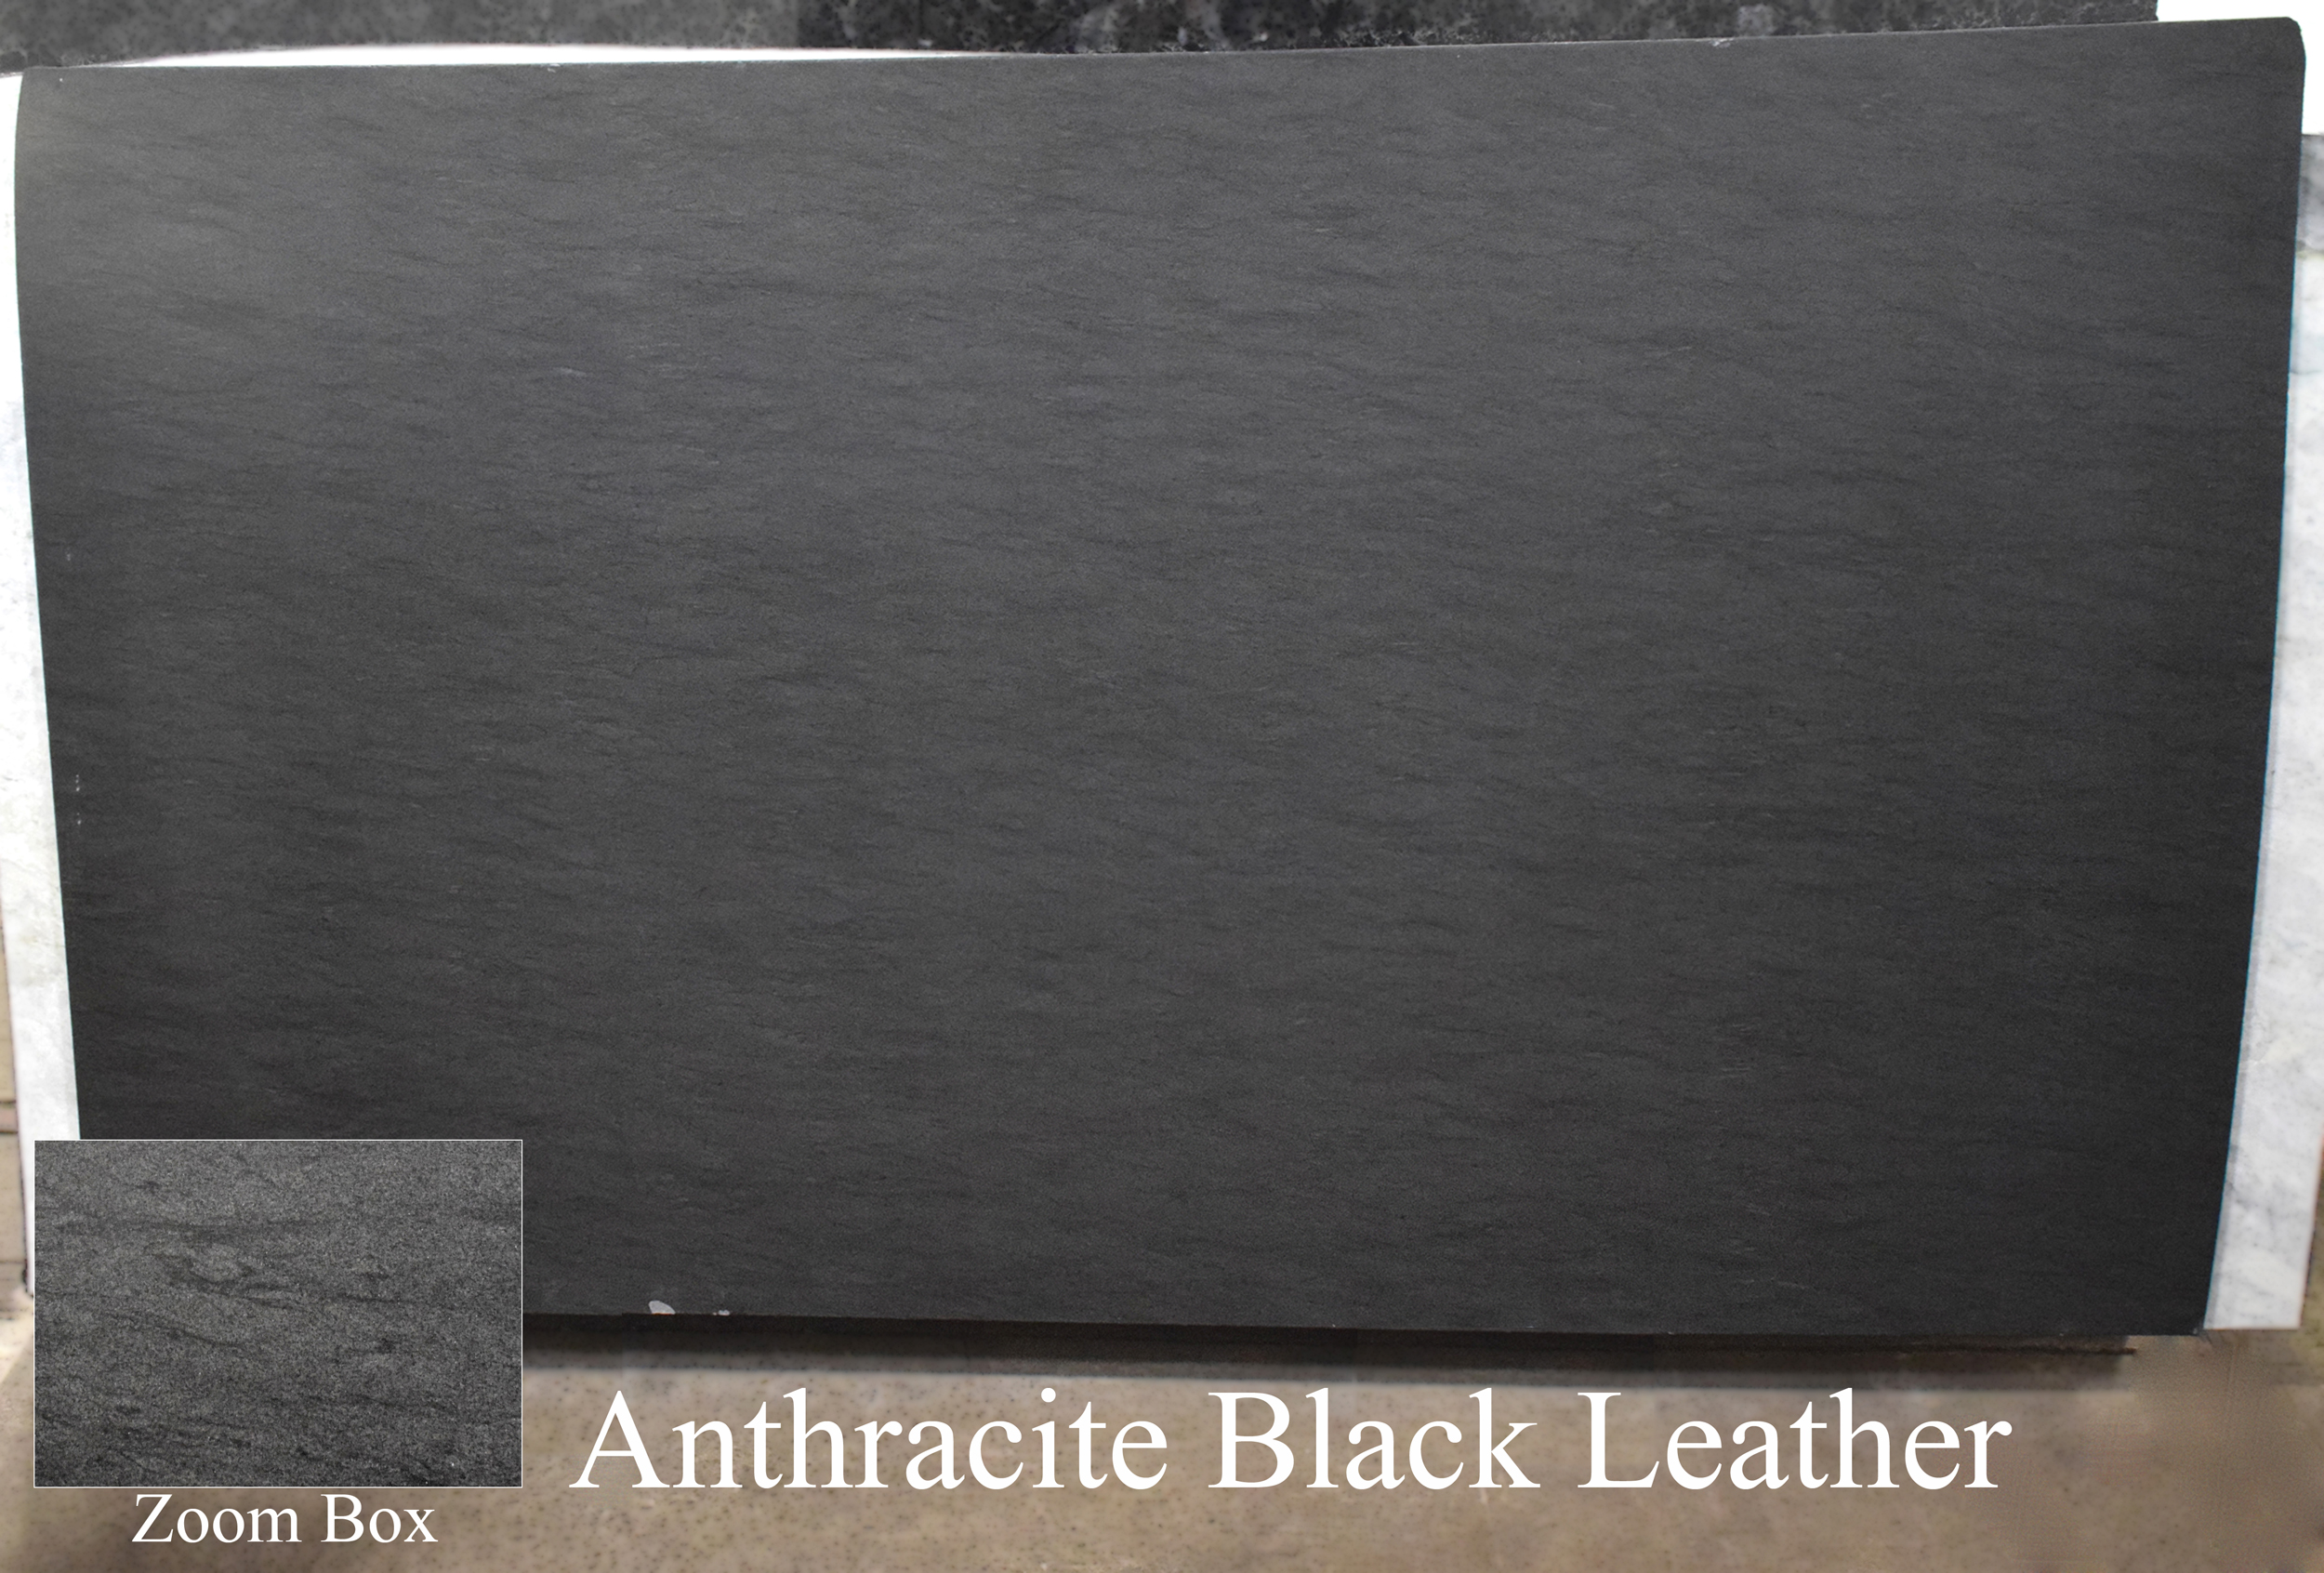 ANTHRACITE BLACK LEATHER